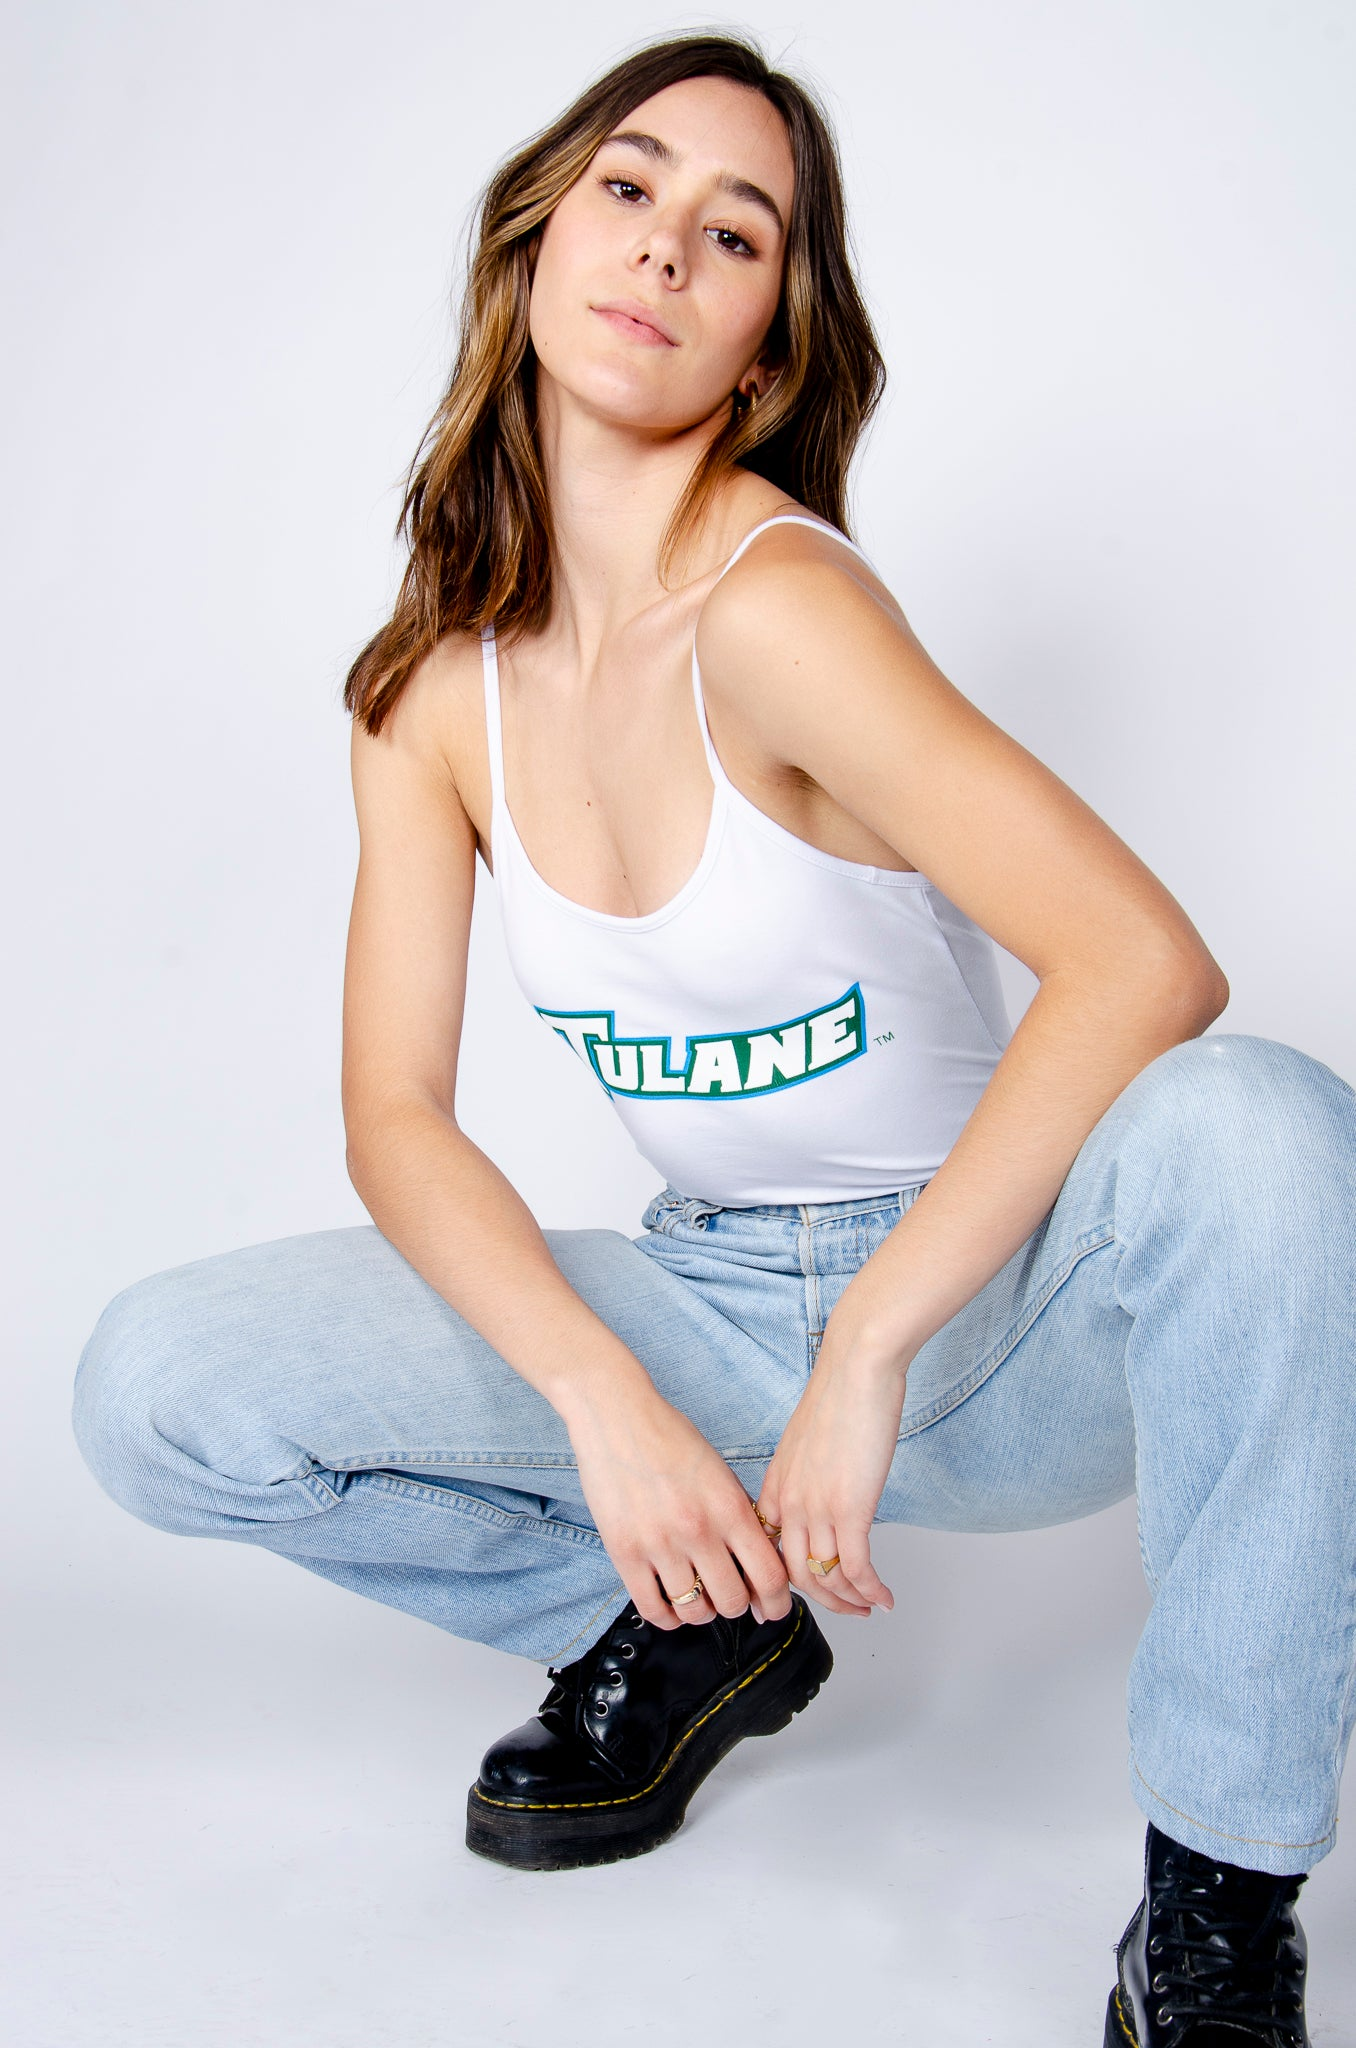 Tulane Gameday Bodysuit - Hype and Vice